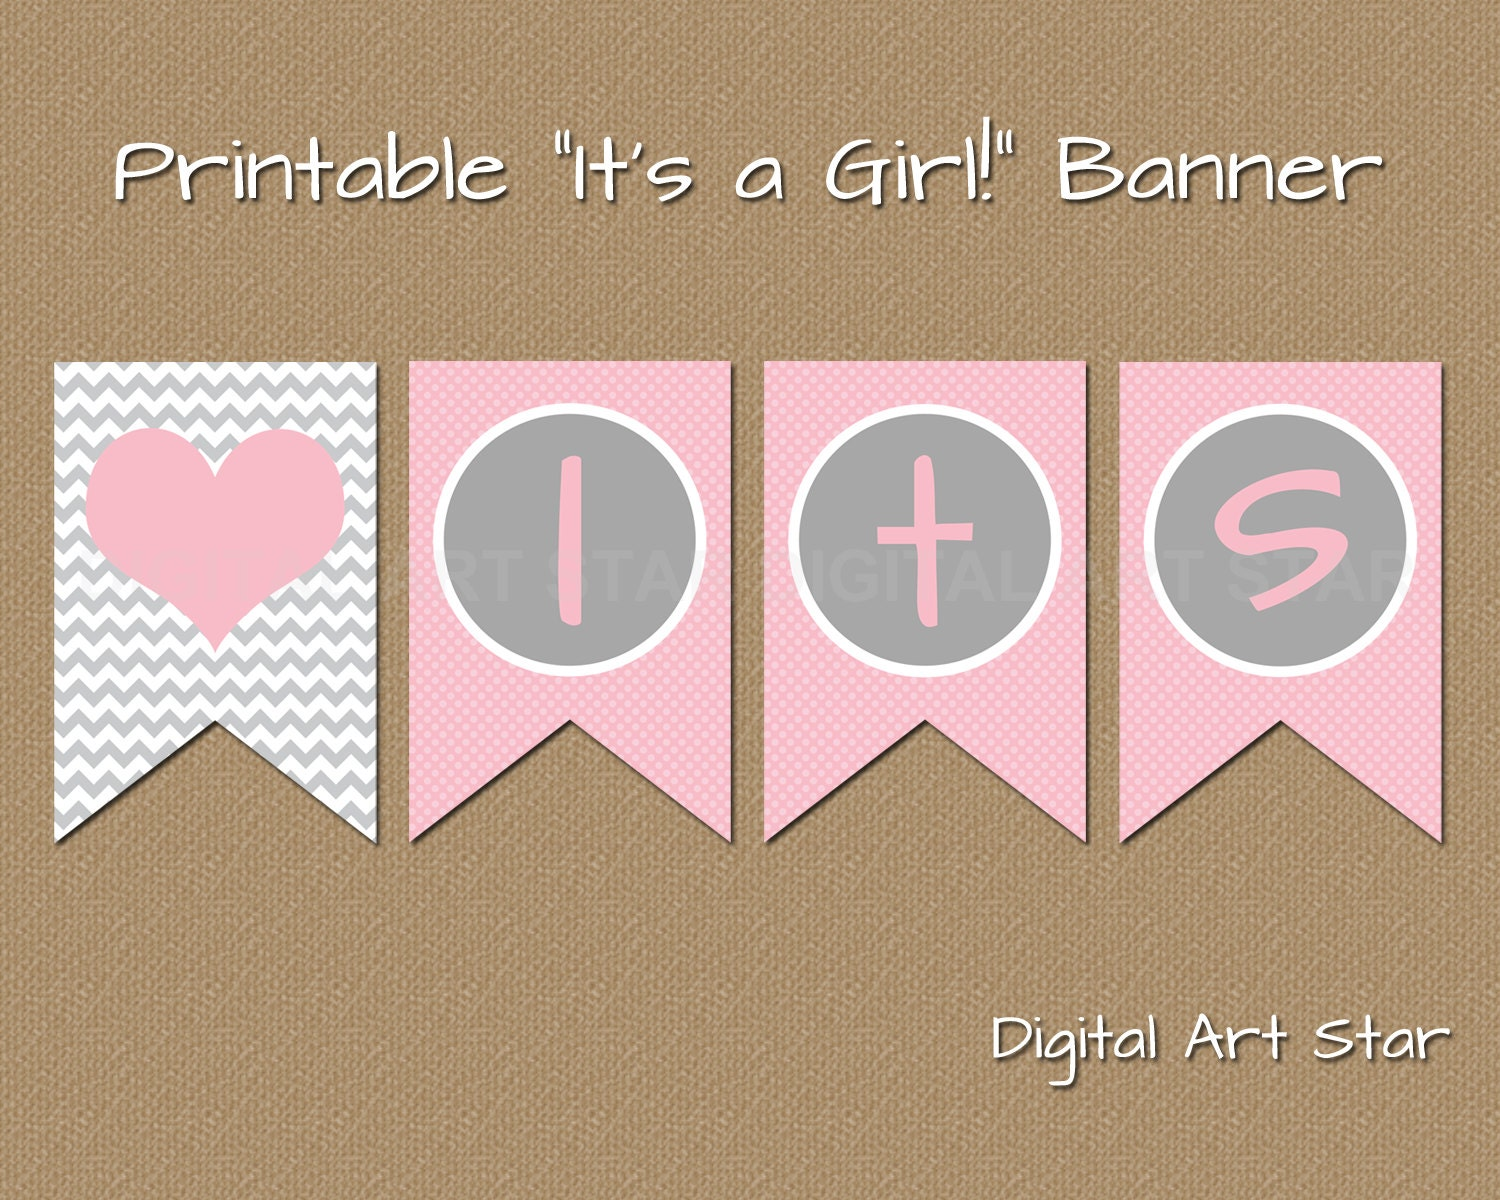 Invaluable image pertaining to baby shower banner printable